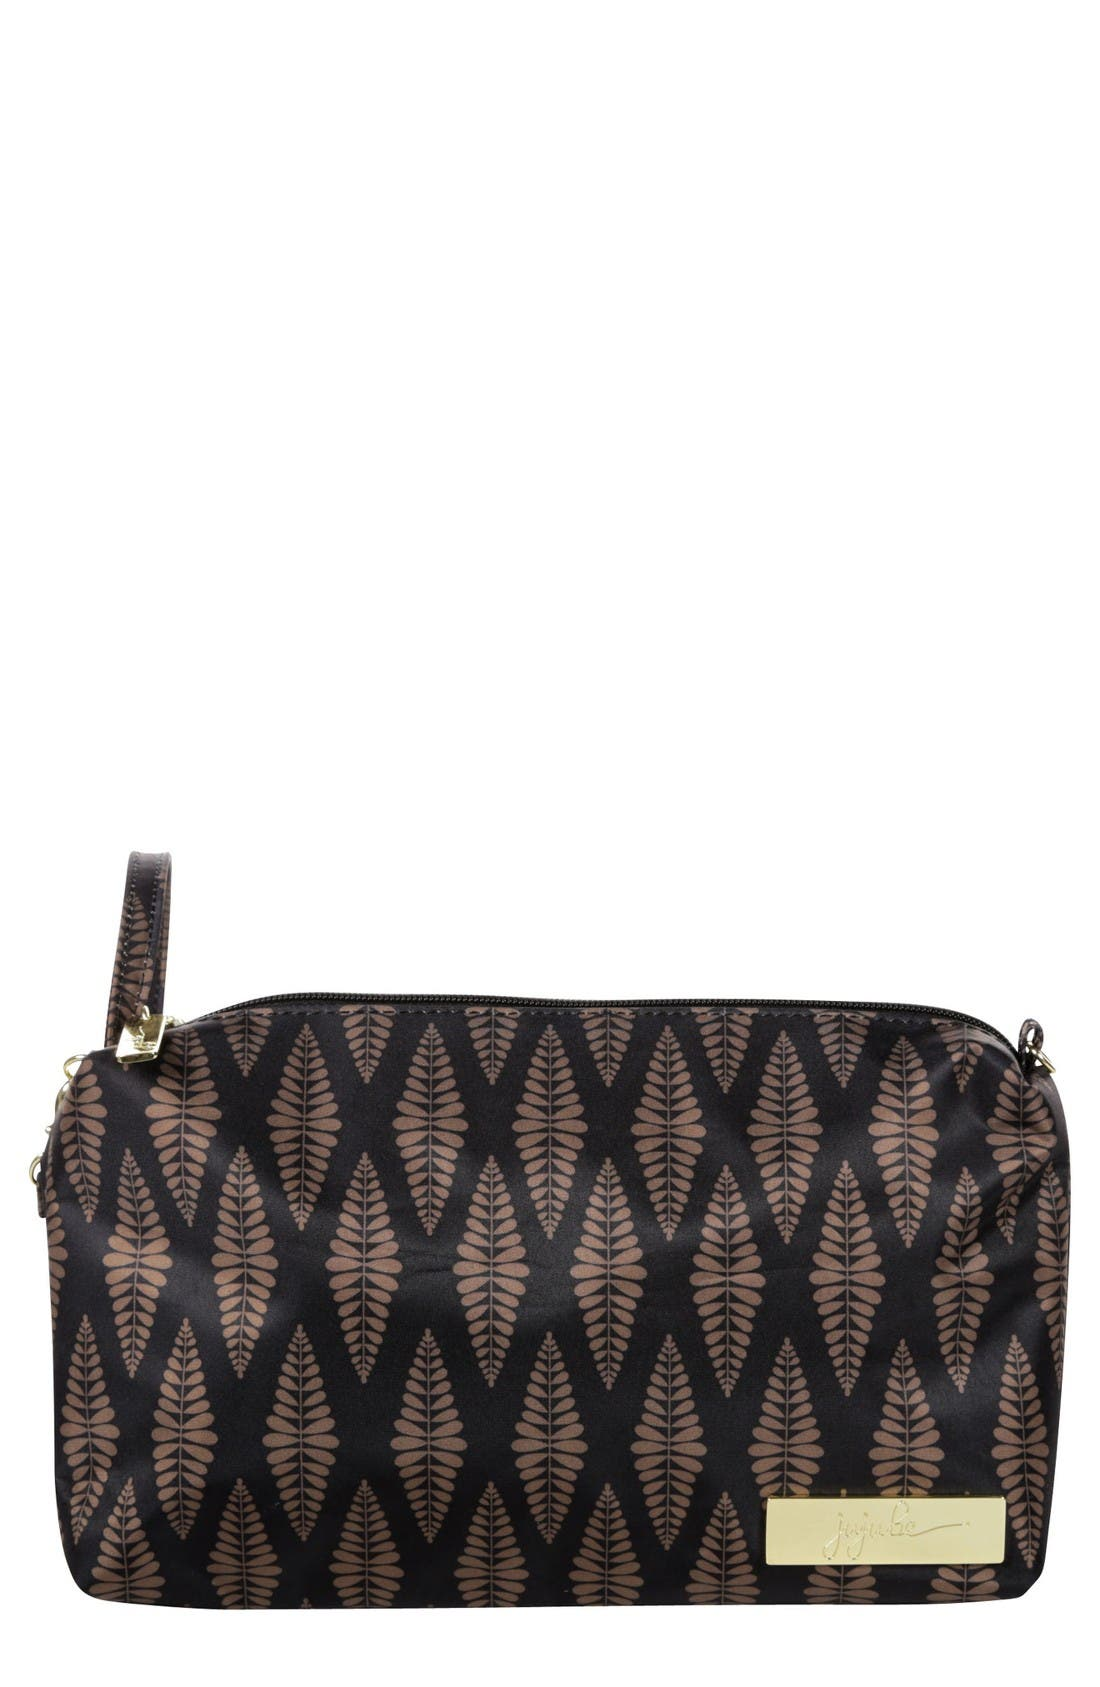 Alternate Image 1 Selected - Ju-Ju-Be 'Legacy Be Quick' Wristlet Pouch